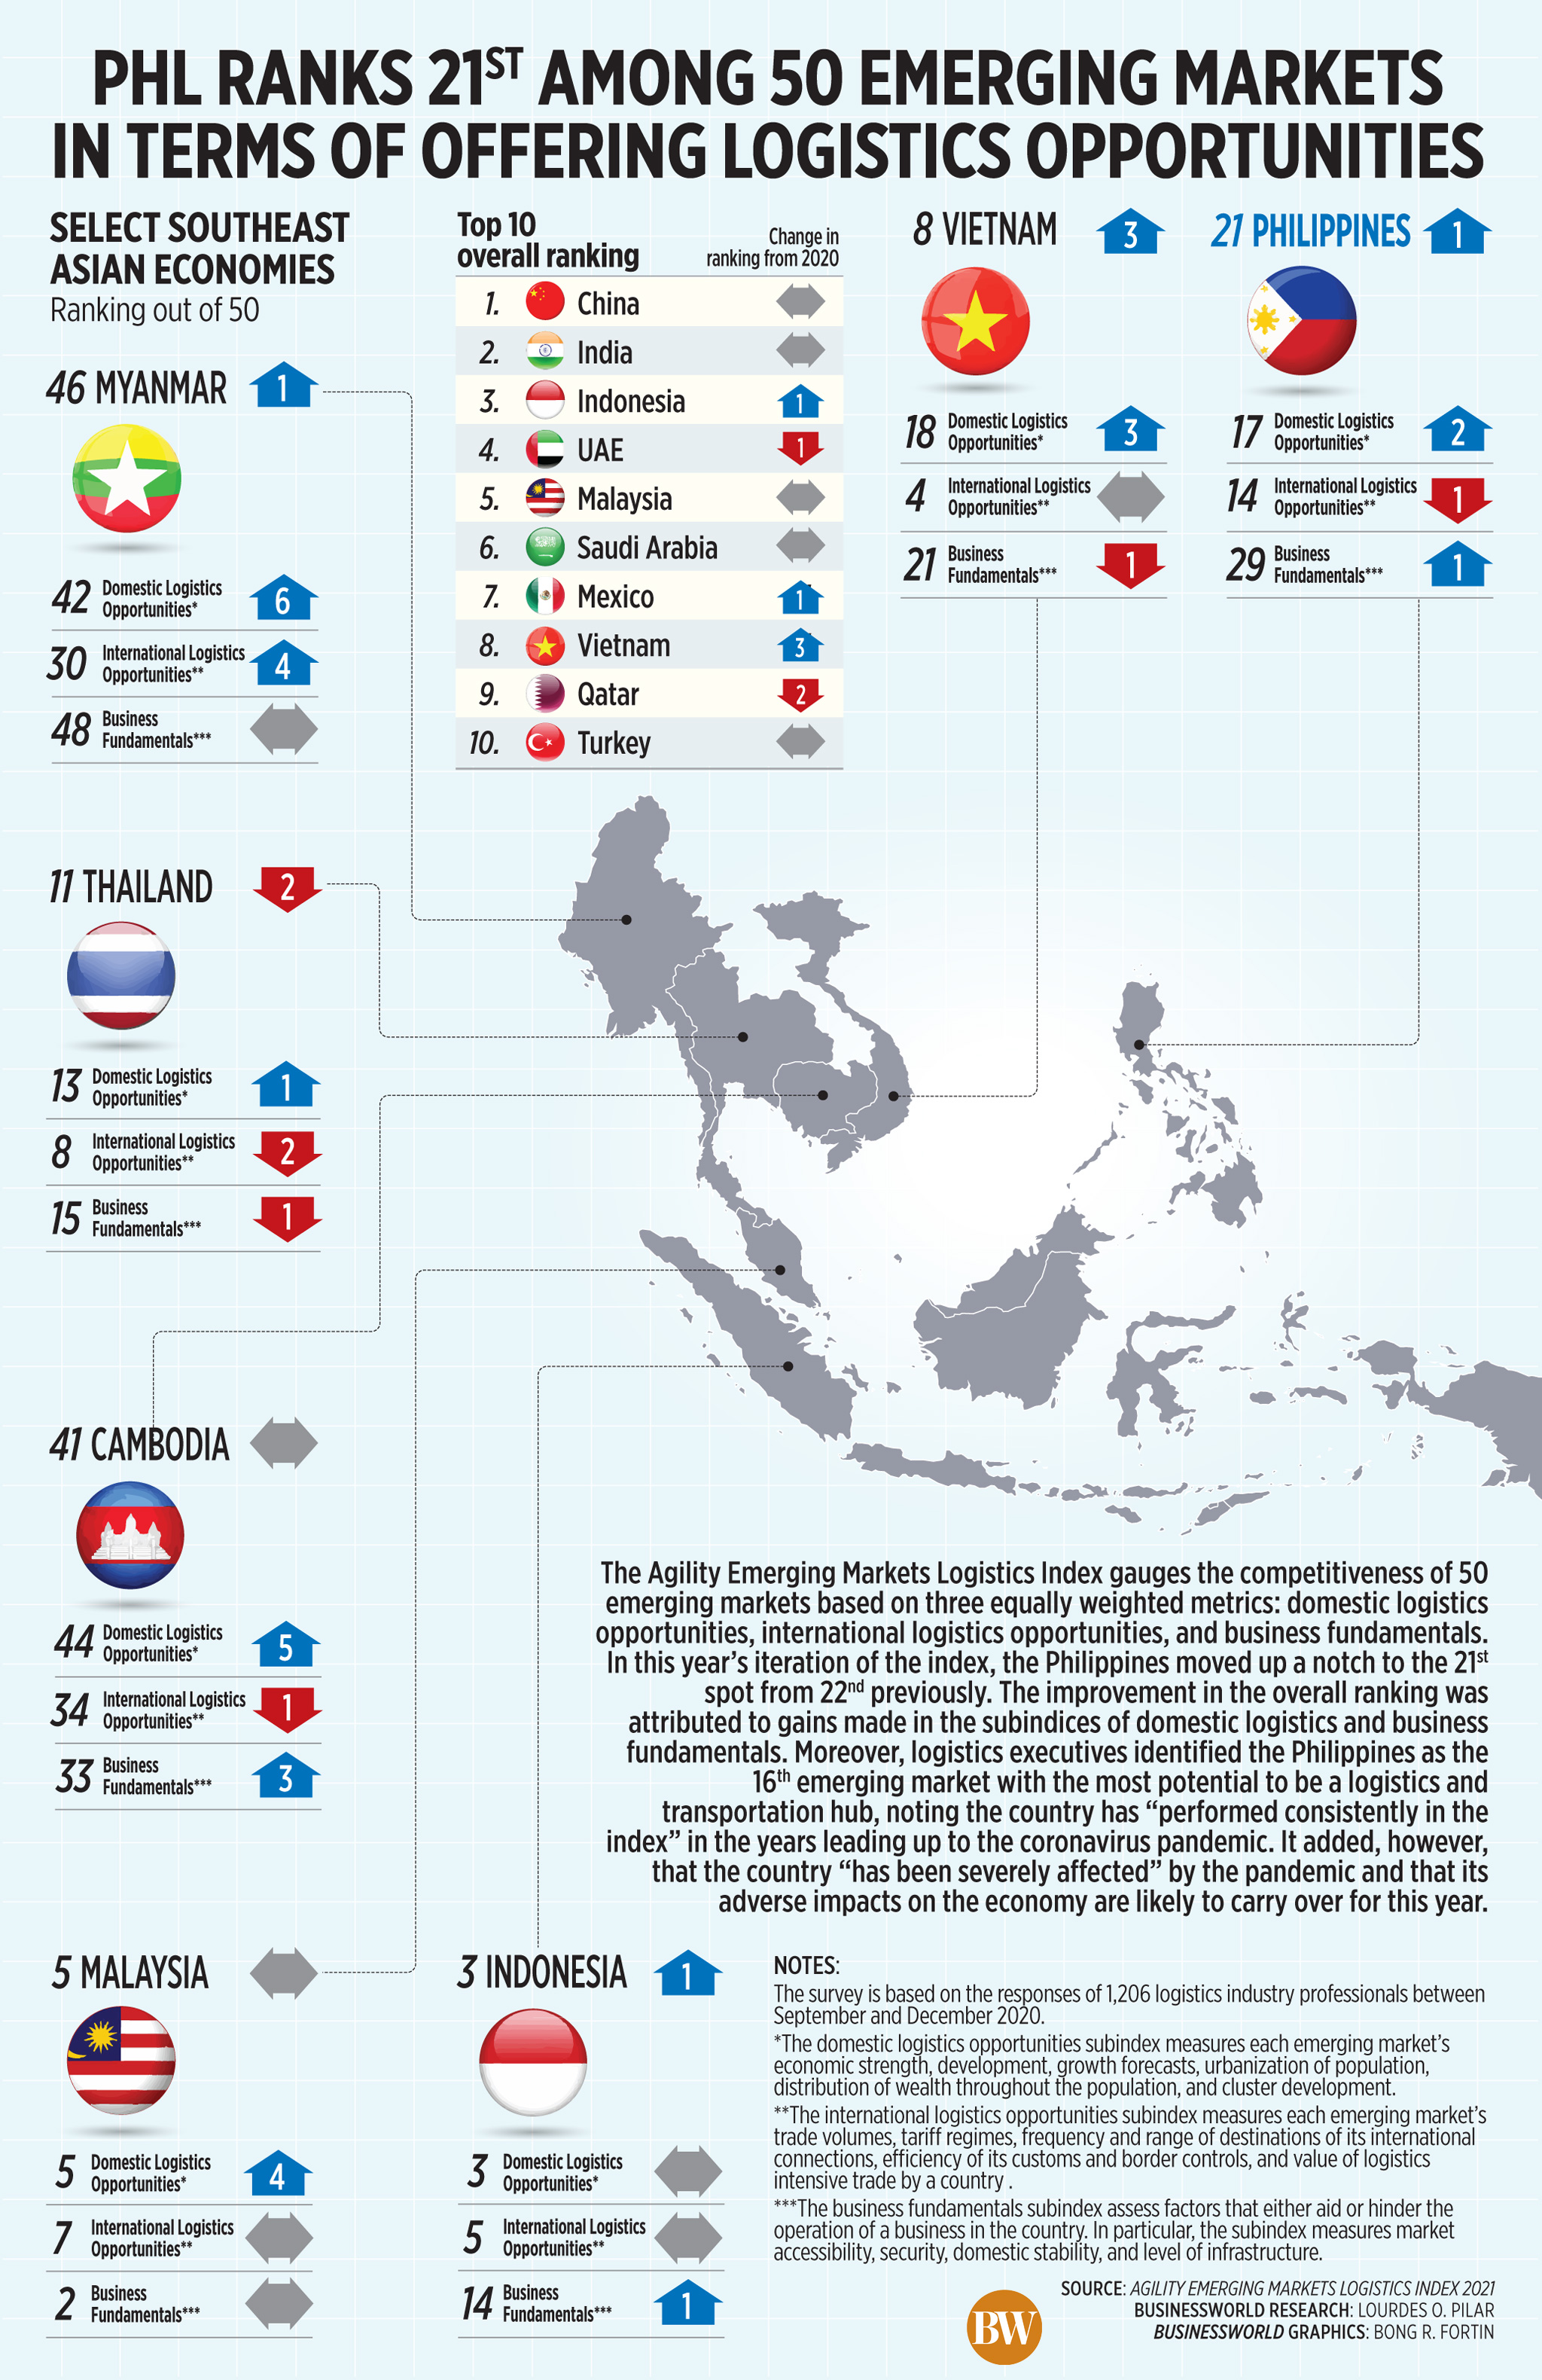 PHL ranks 21<sup>st</sup> among 50 emerging markets in terms of offering logistics opportunities